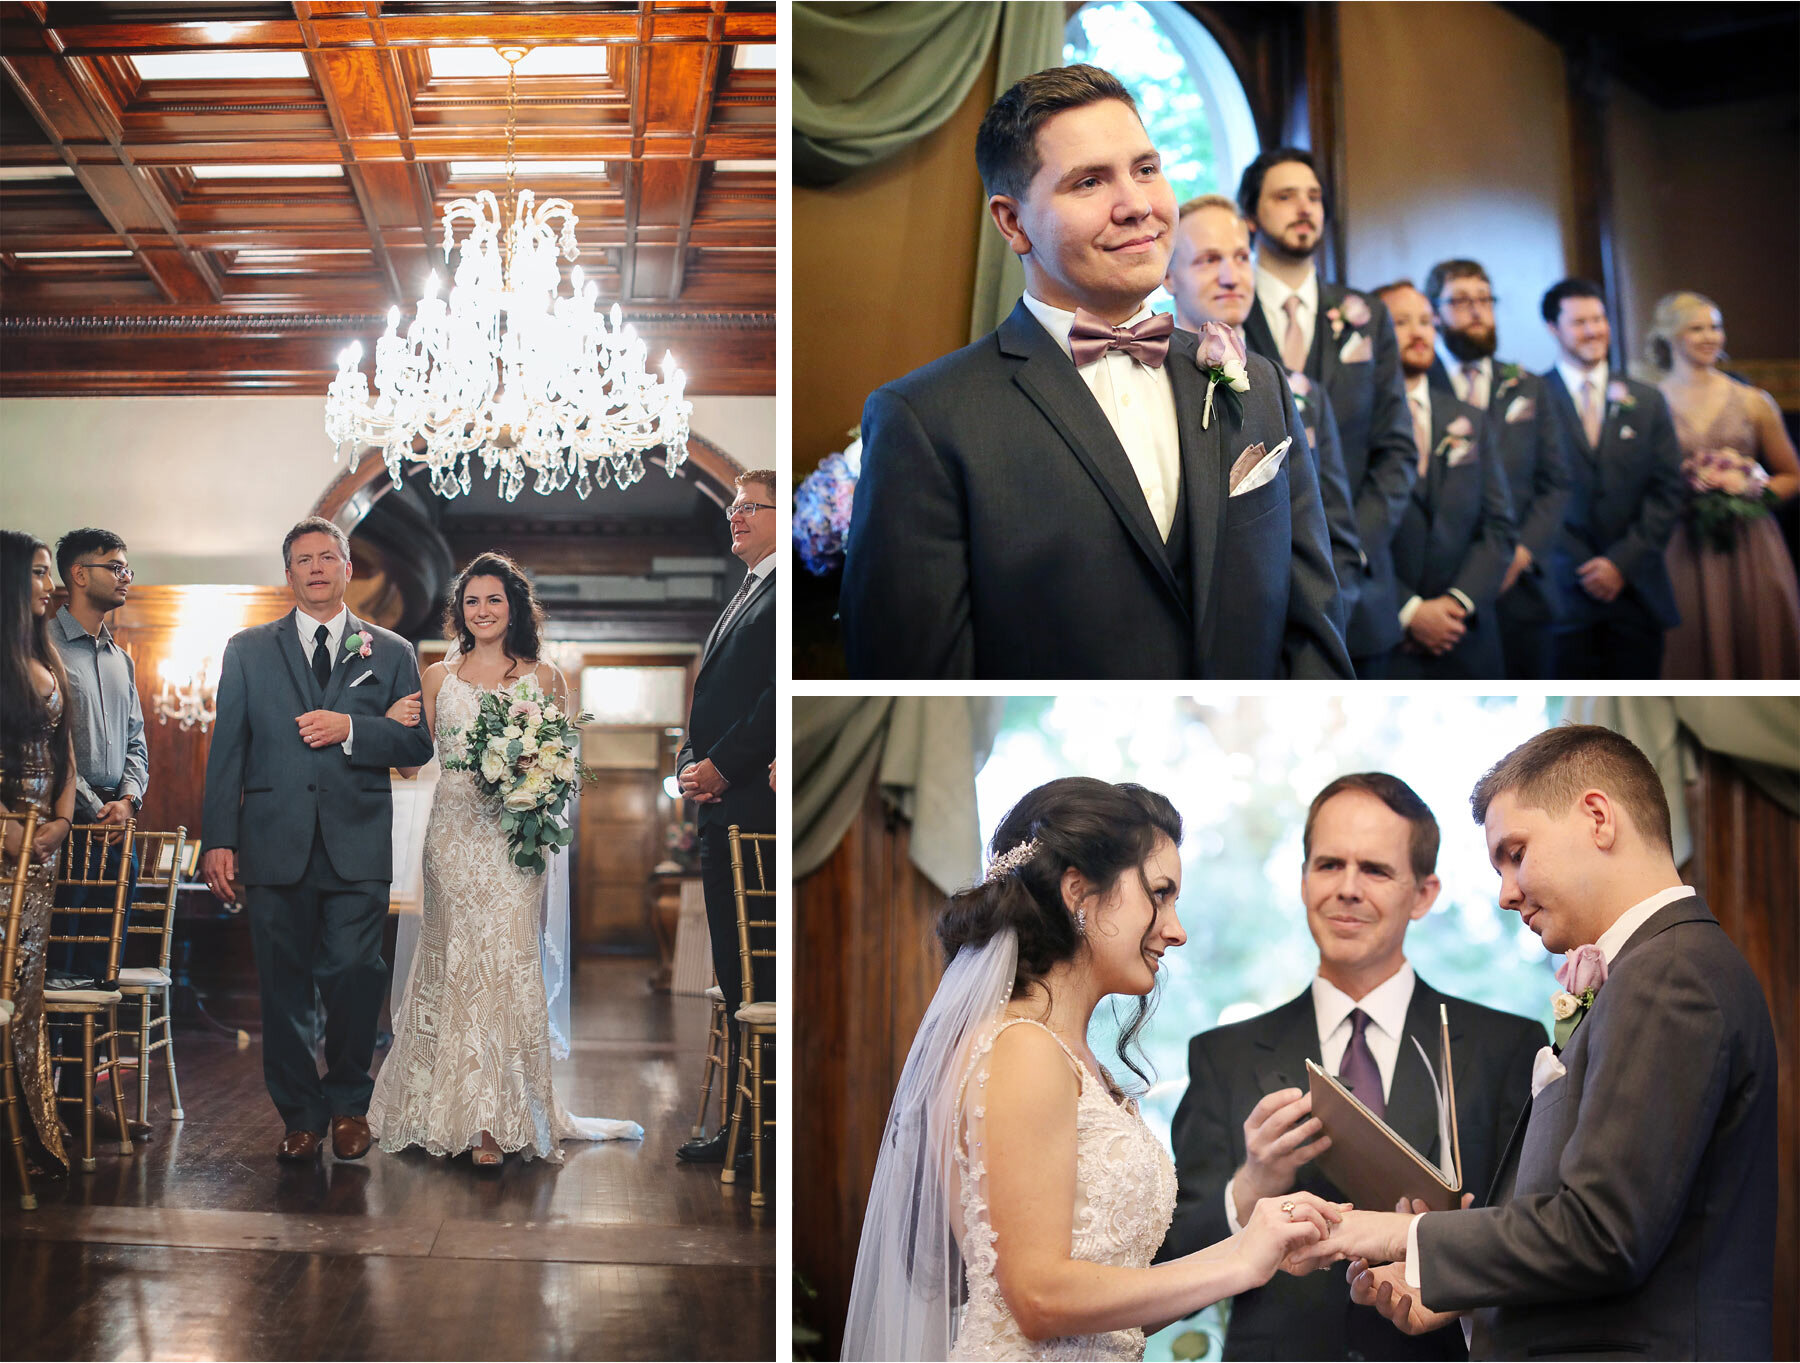 09-Wedding-by-Vick-Photography-Minneapolis-Minnesota-Semple-Mansion-Historic-Venue-Bride-Groom-Ceremony-Kaitlyn-and-Nate.jpg